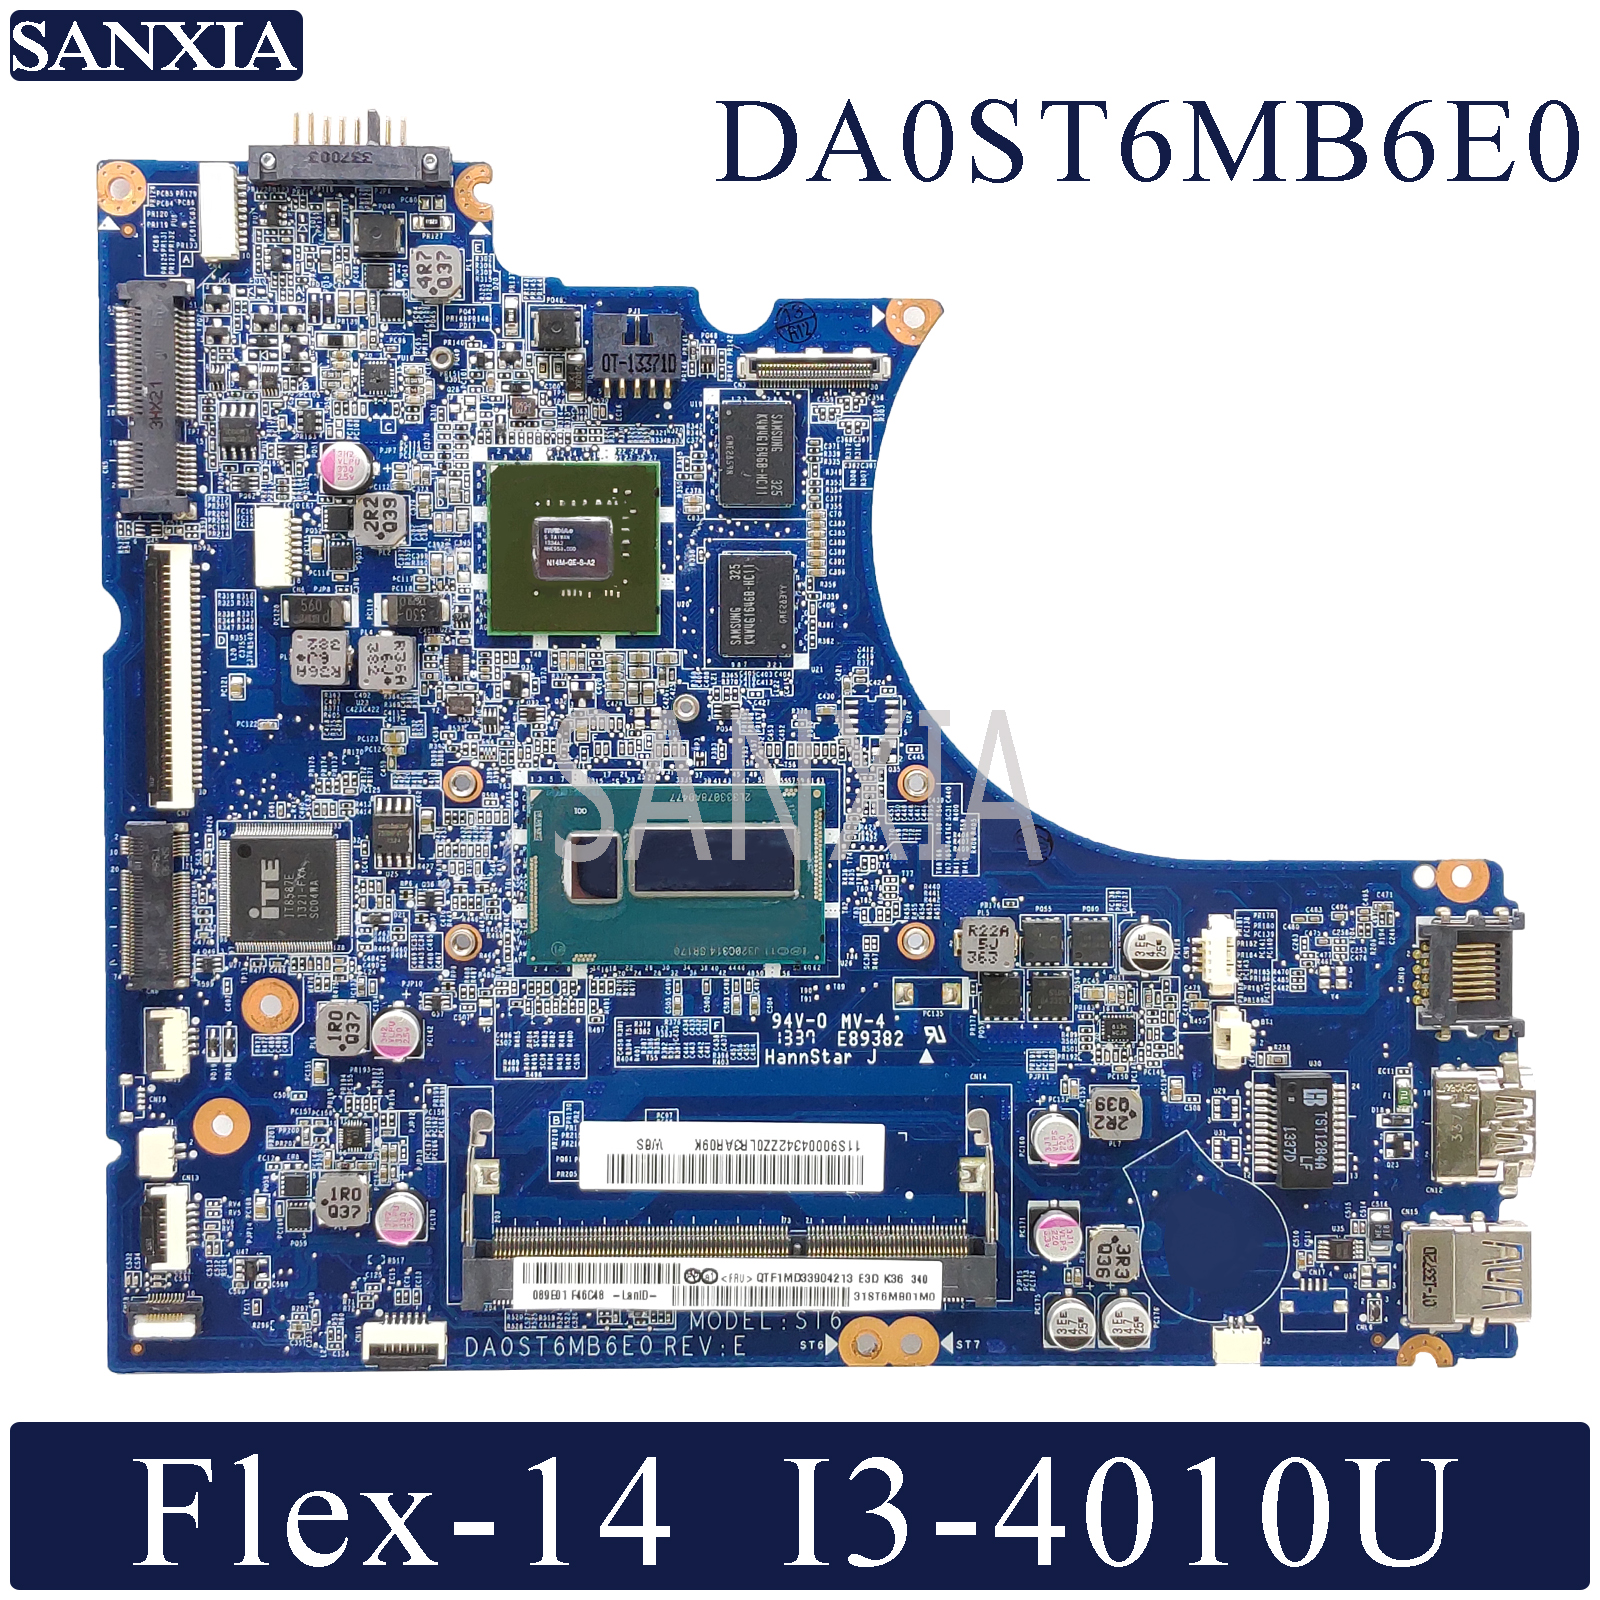 KEFU DA0ST6MB6E0 Laptop Motherboard For Lenovo Flex-14 Original Mainboard I3-4010U GT720M